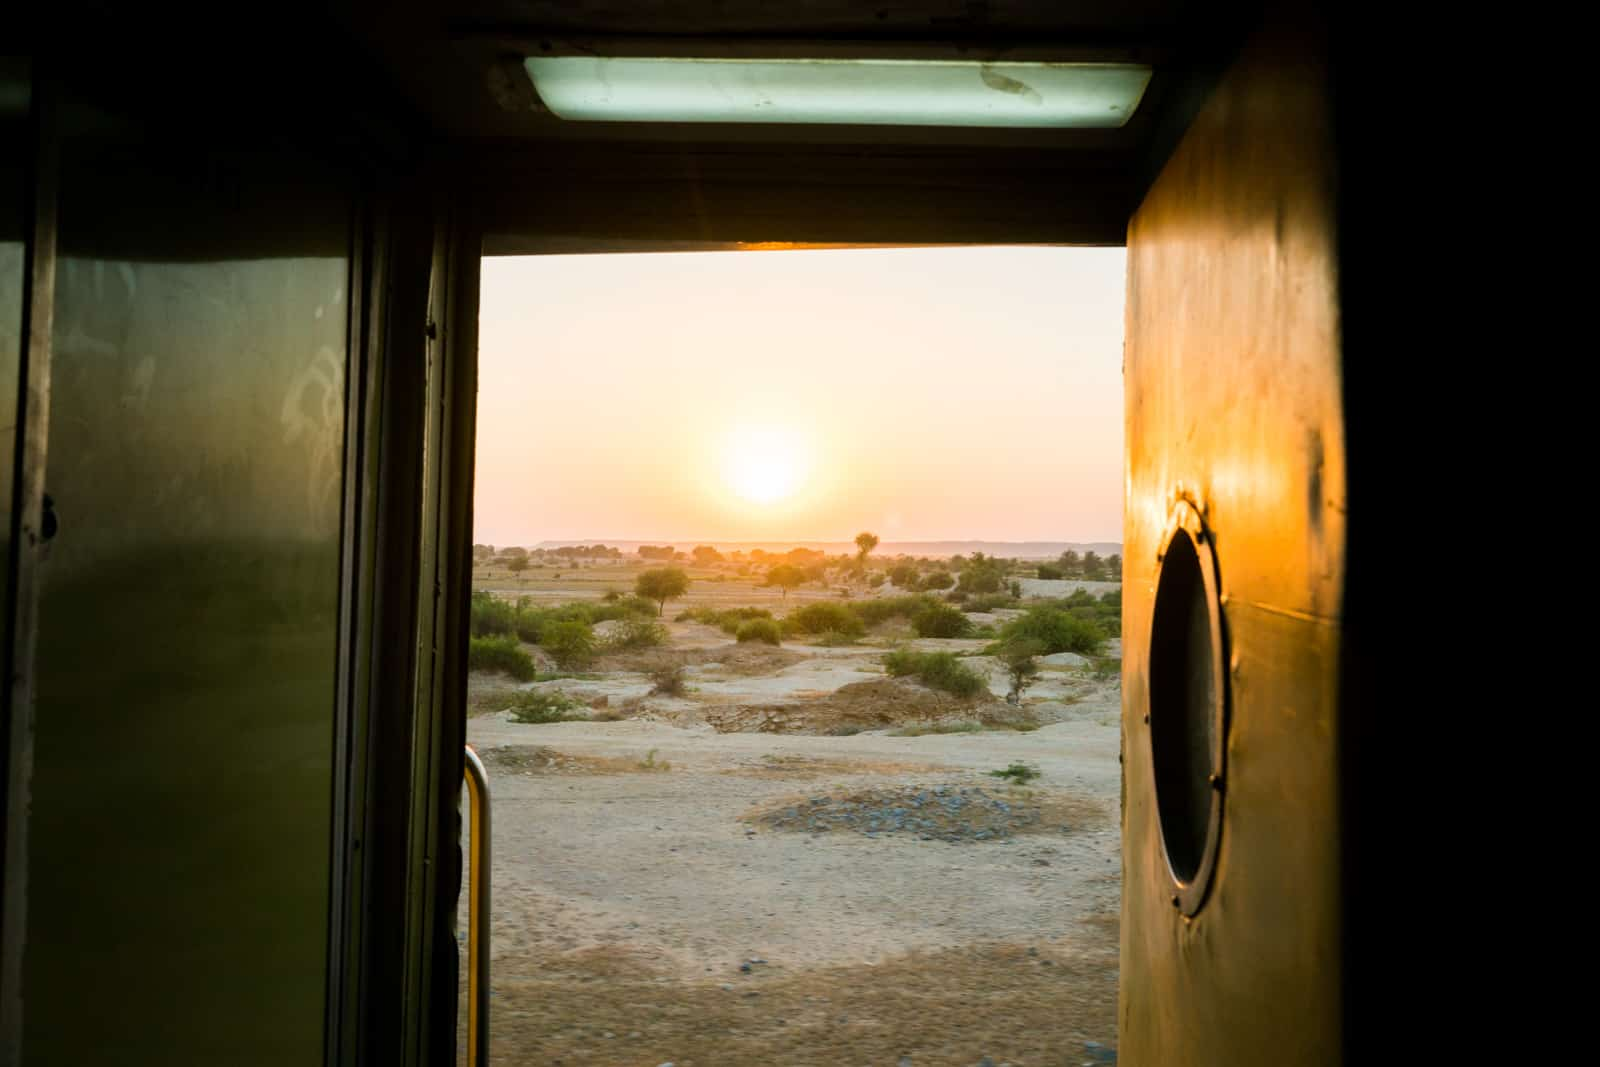 How to buy train tickets in Pakistan - Sunsets from the train in the desert of Sindh - Lost With Purpose travel blog